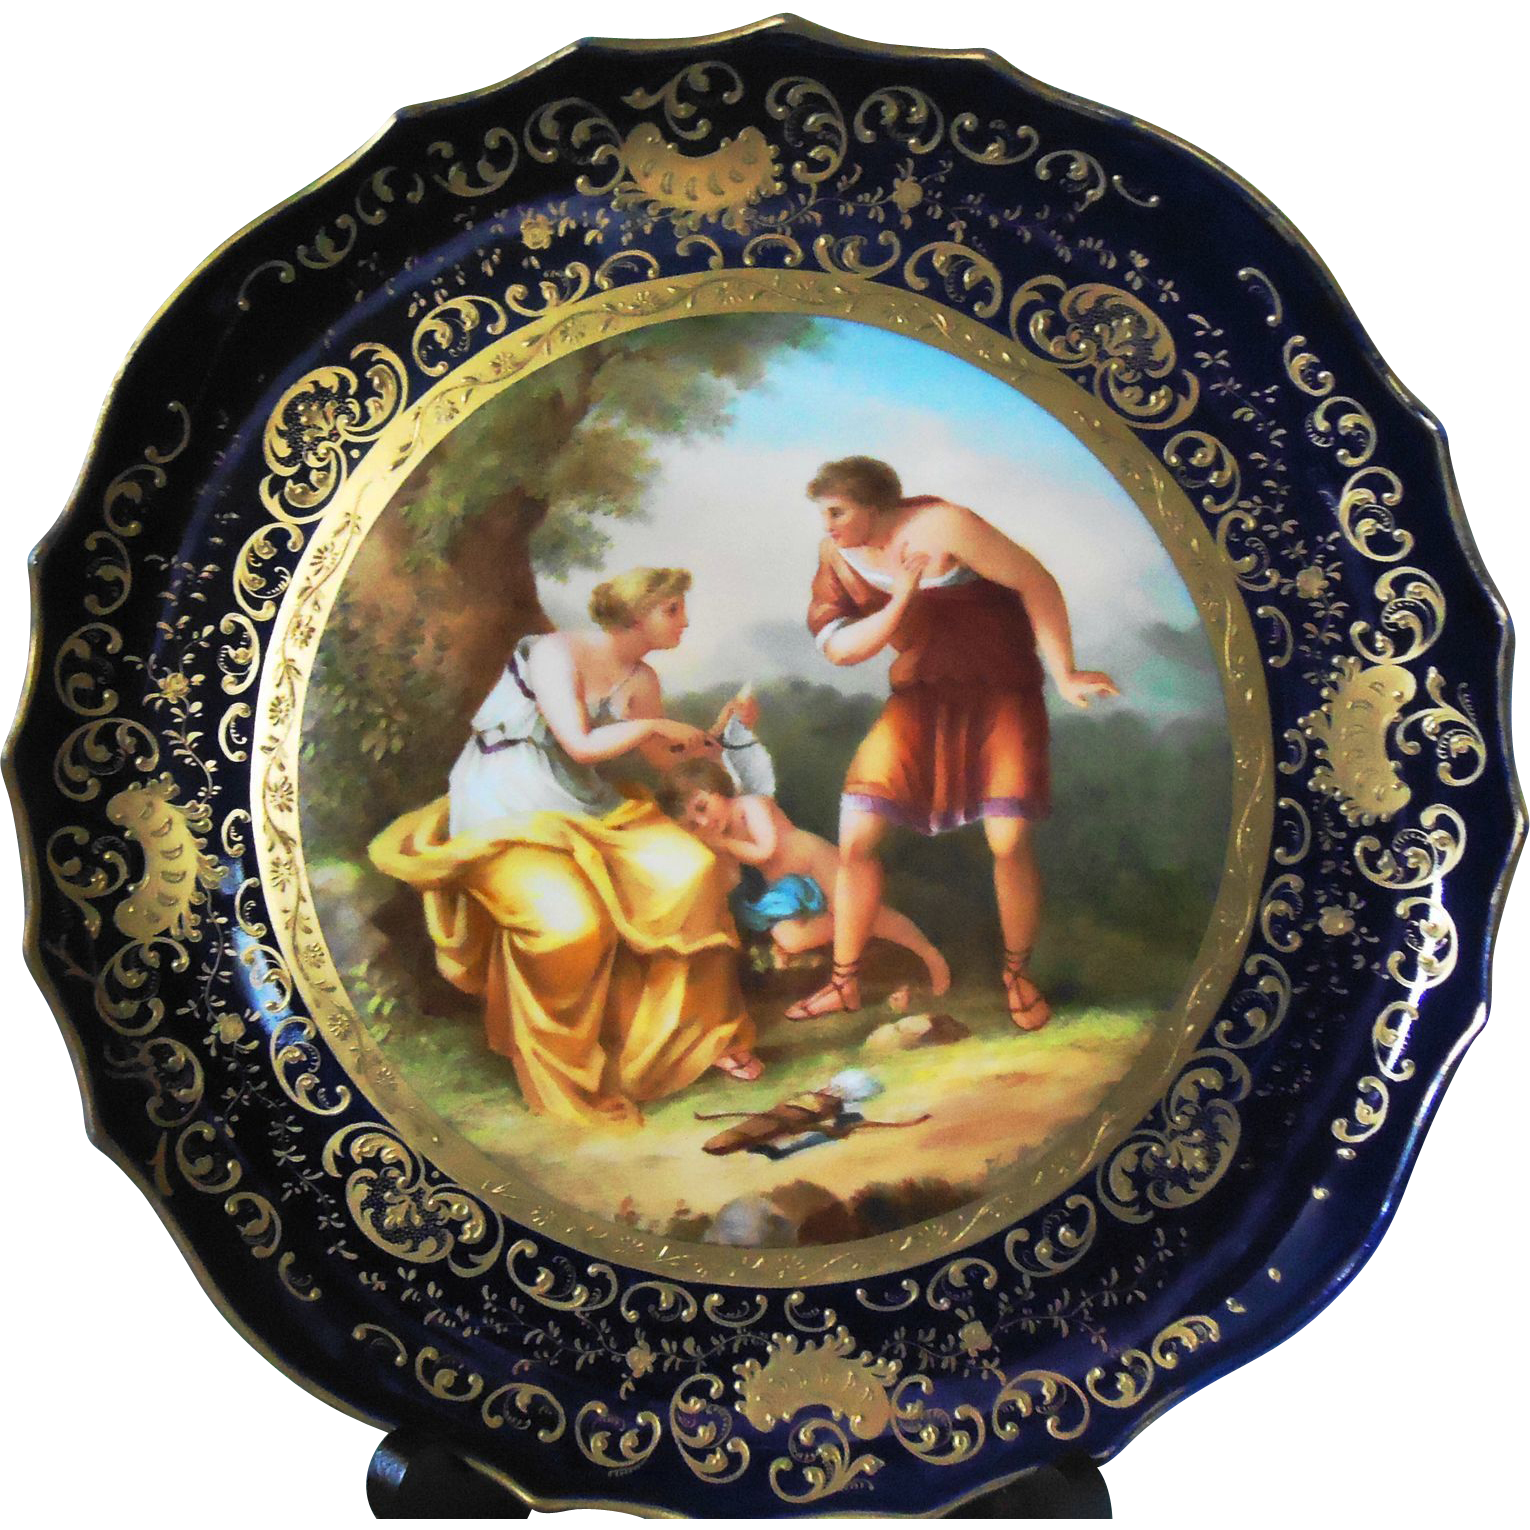 Angelica kauffmann decorative plate from sweetcandy on for Decoration plater